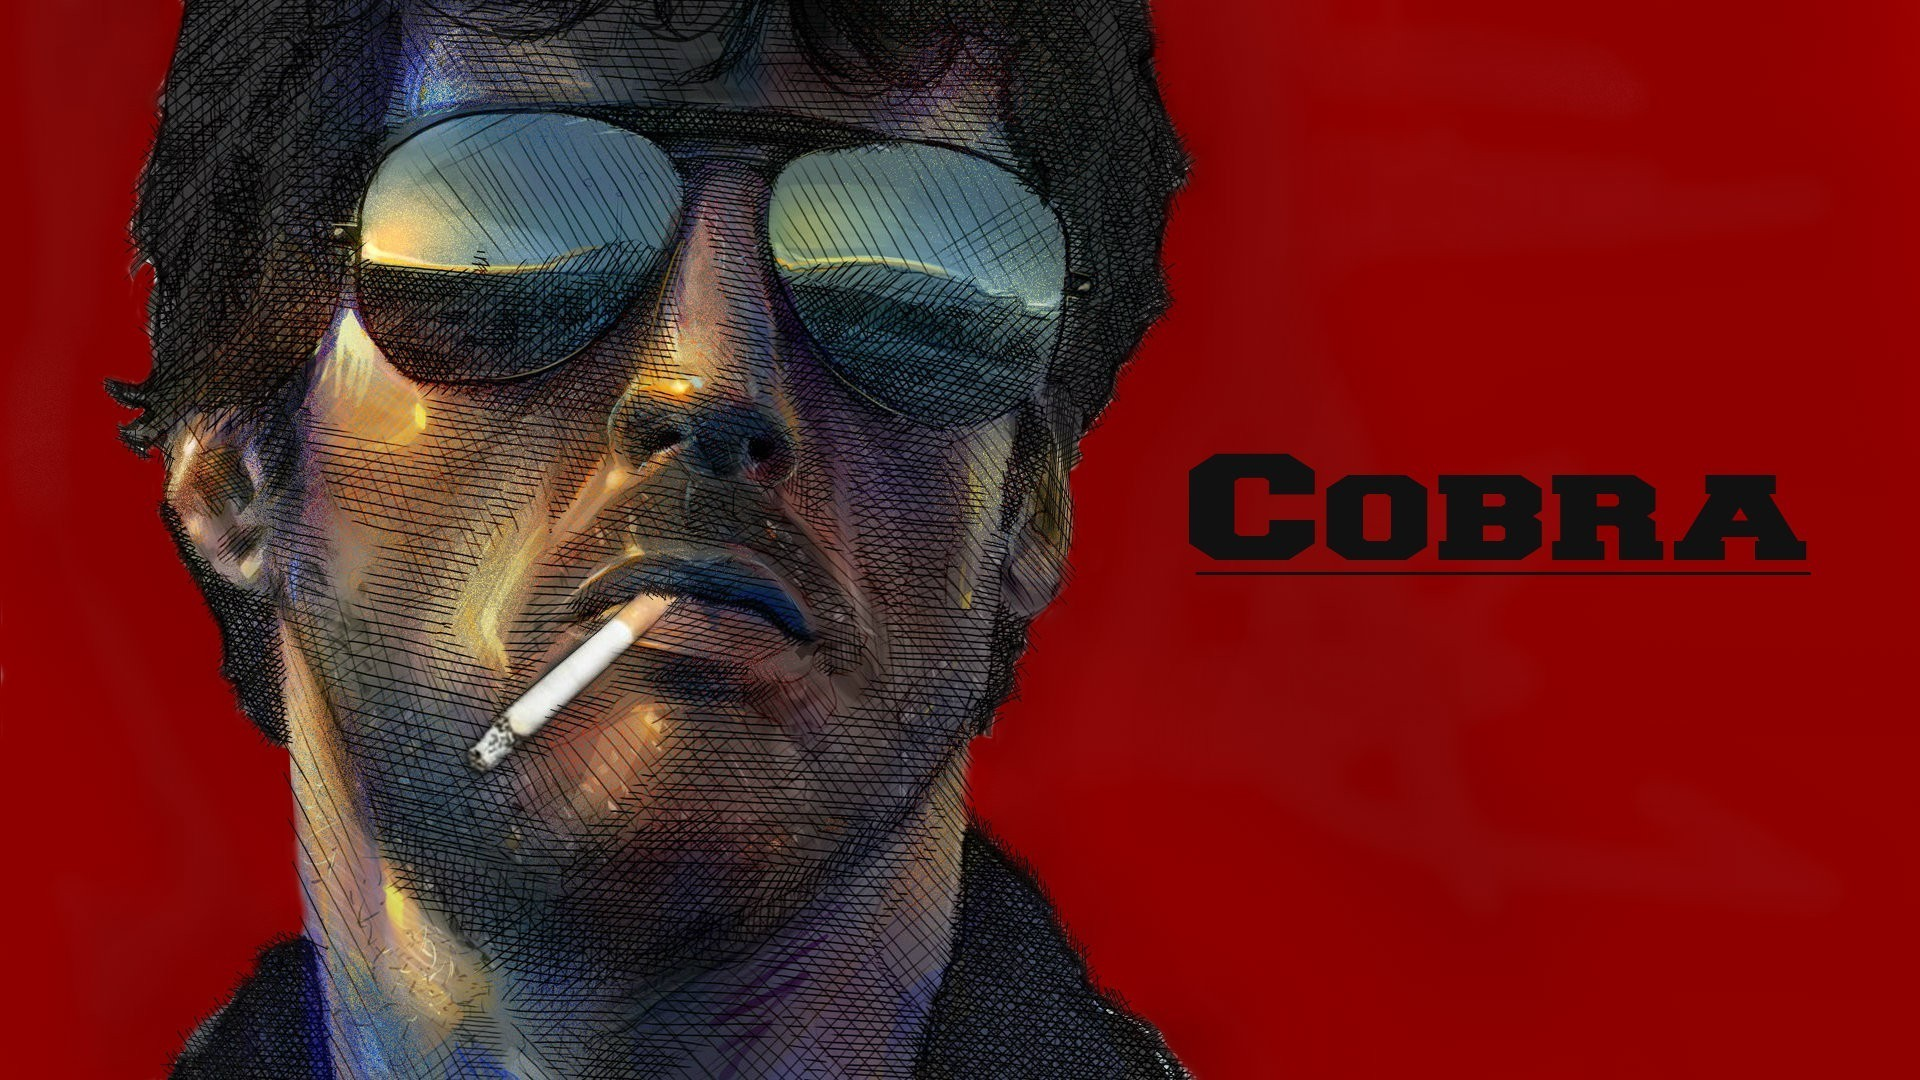 1920x1080 Sylvester Stallone, Cobra (movie) Wallpapers HD / Desktop and Mobile  Backgrounds